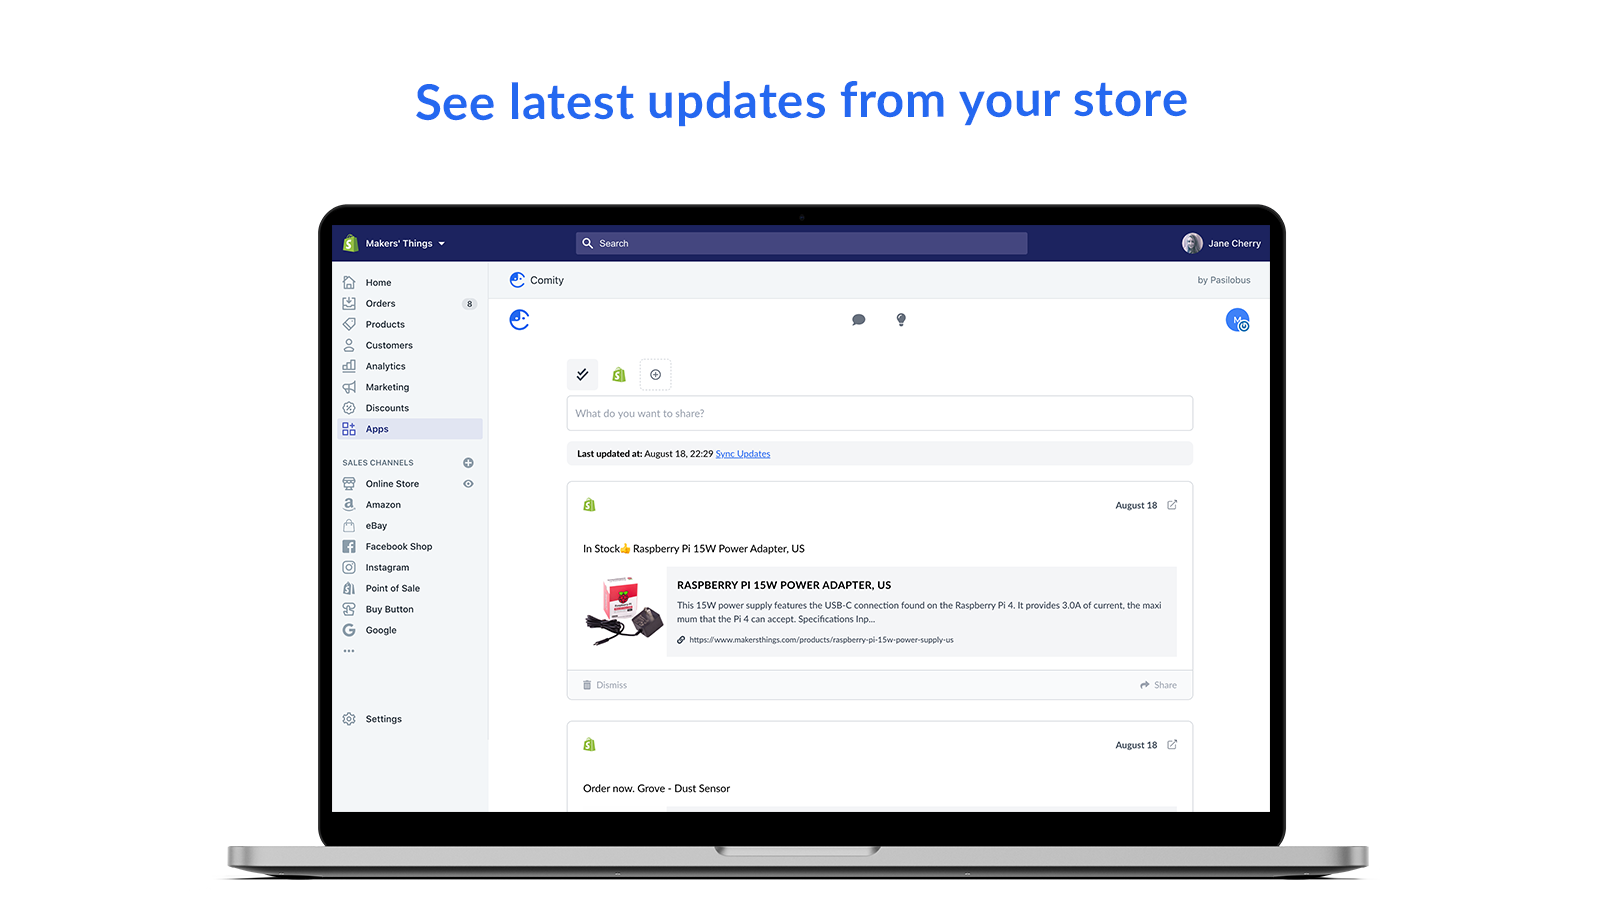 See latest updates from your store - Comity